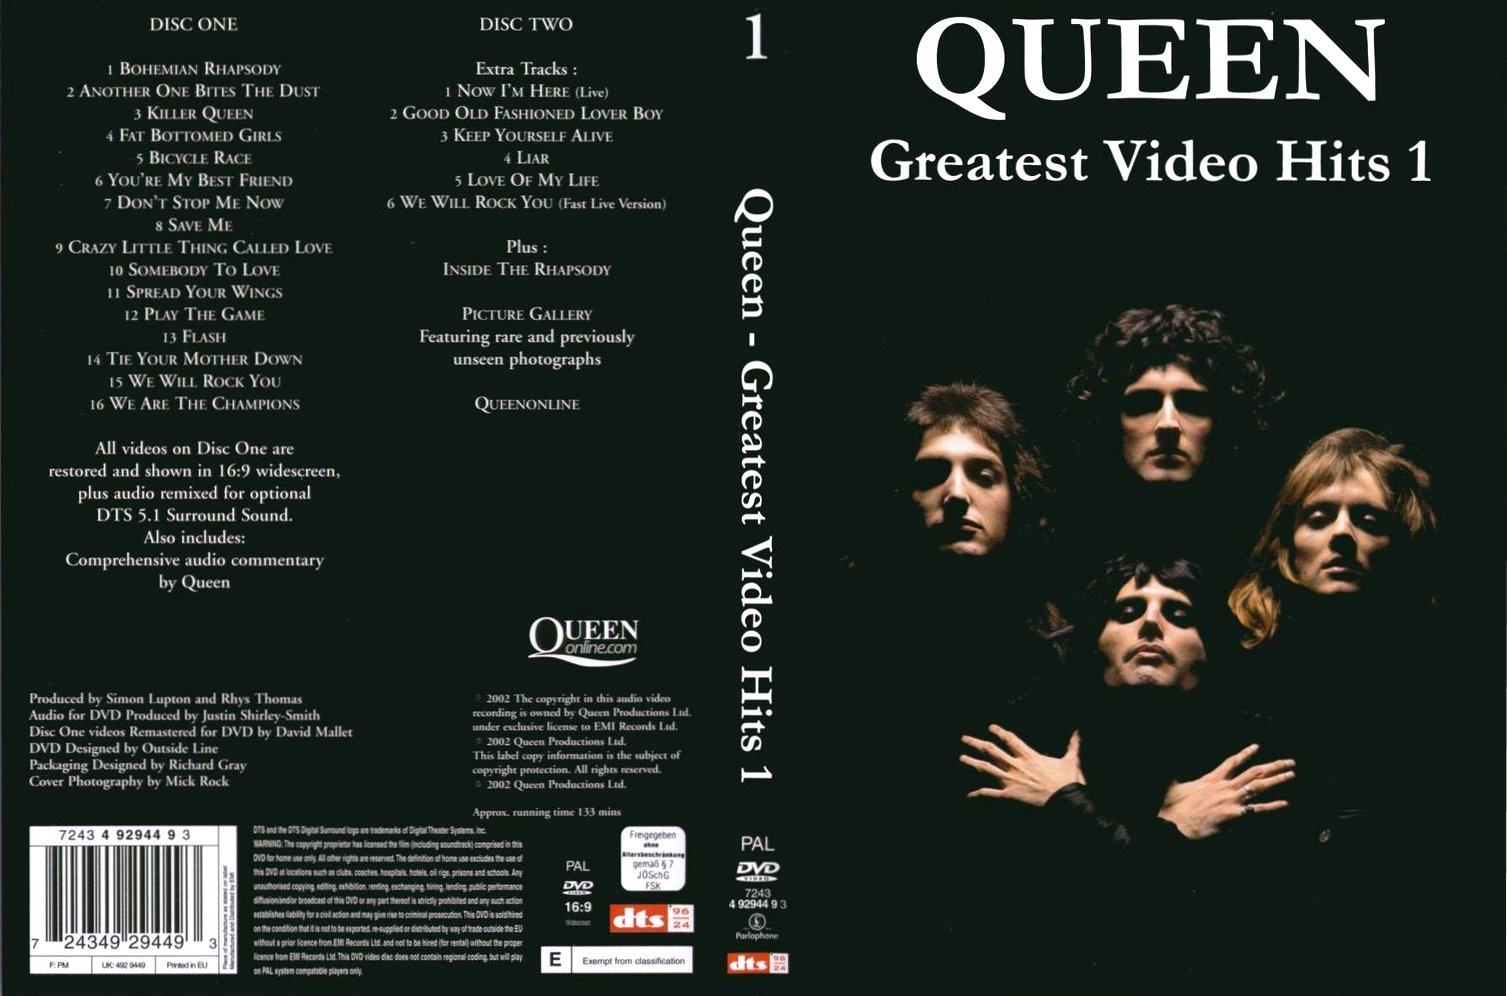 http://3.bp.blogspot.com/-9WHfi0lsxdY/UCO7ObbkmJI/AAAAAAAAC7w/9hVT1lUSH3g/s1600/Queen_Greatest_Video_Hits_1.jpg